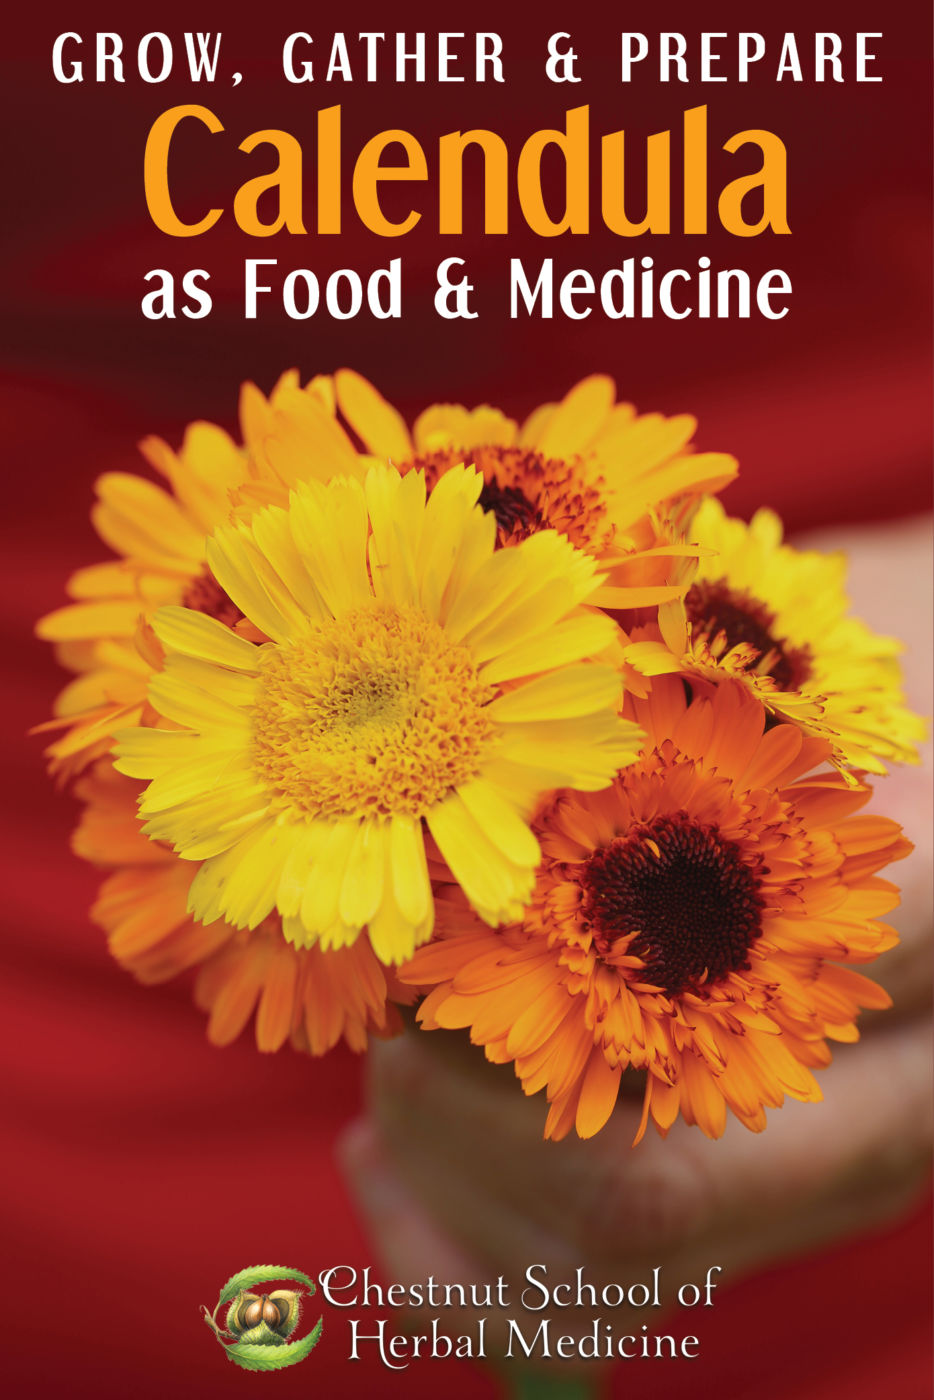 Calendula's Herbal & Edible Uses- How to Grow, Gather, and Prepare Calendula as Food and Medicine